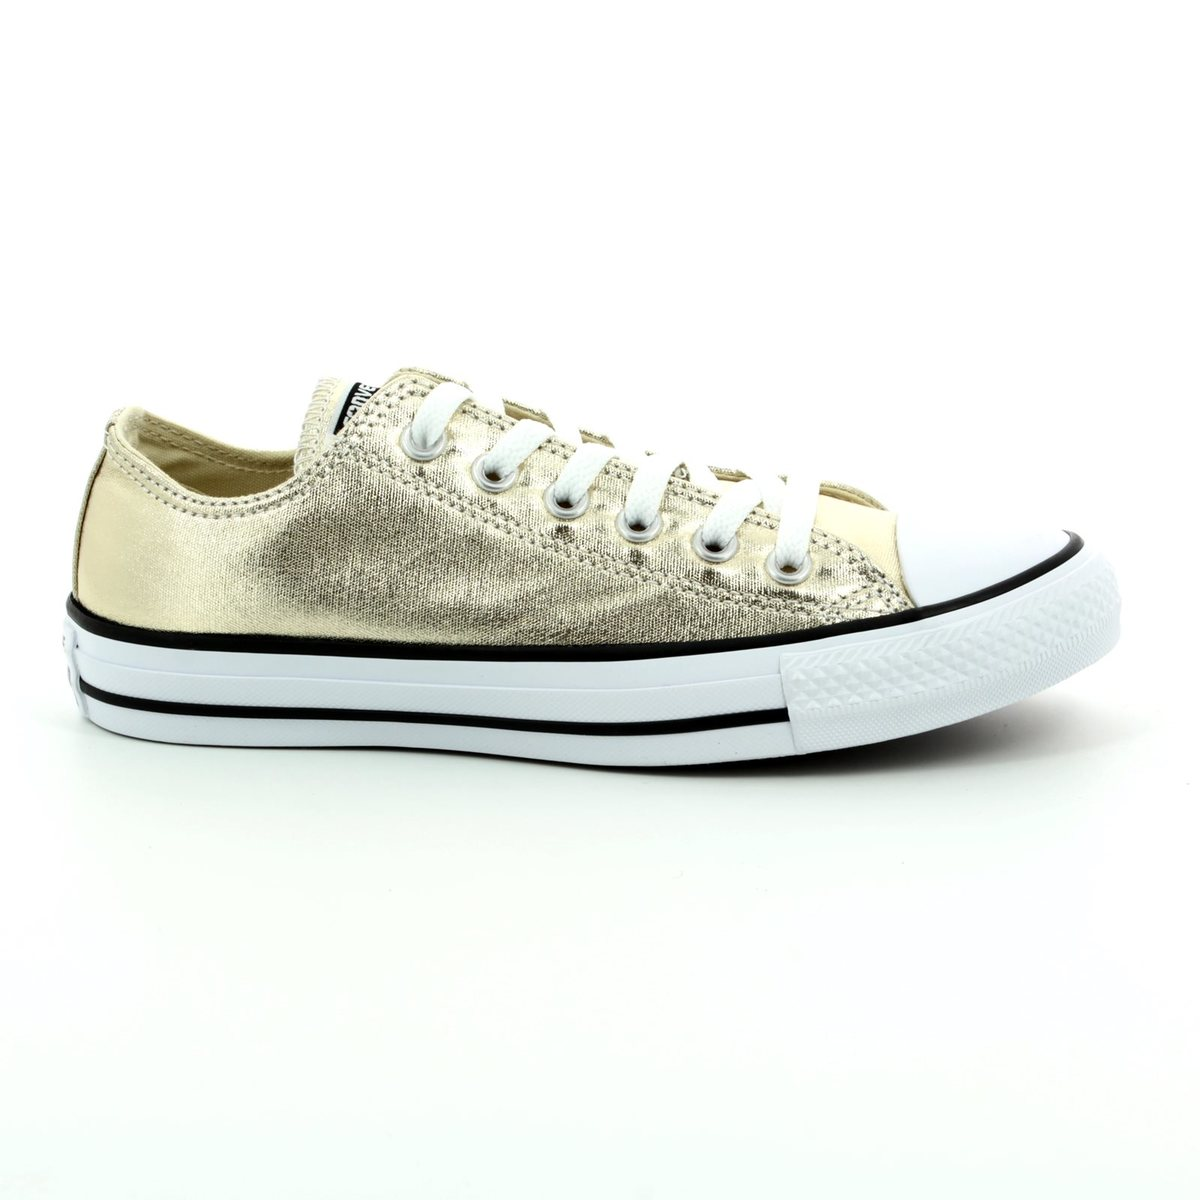 c77150967796 Converse Trainers - Gold - 153181C Chuck Taylor All Star OX Light Gold